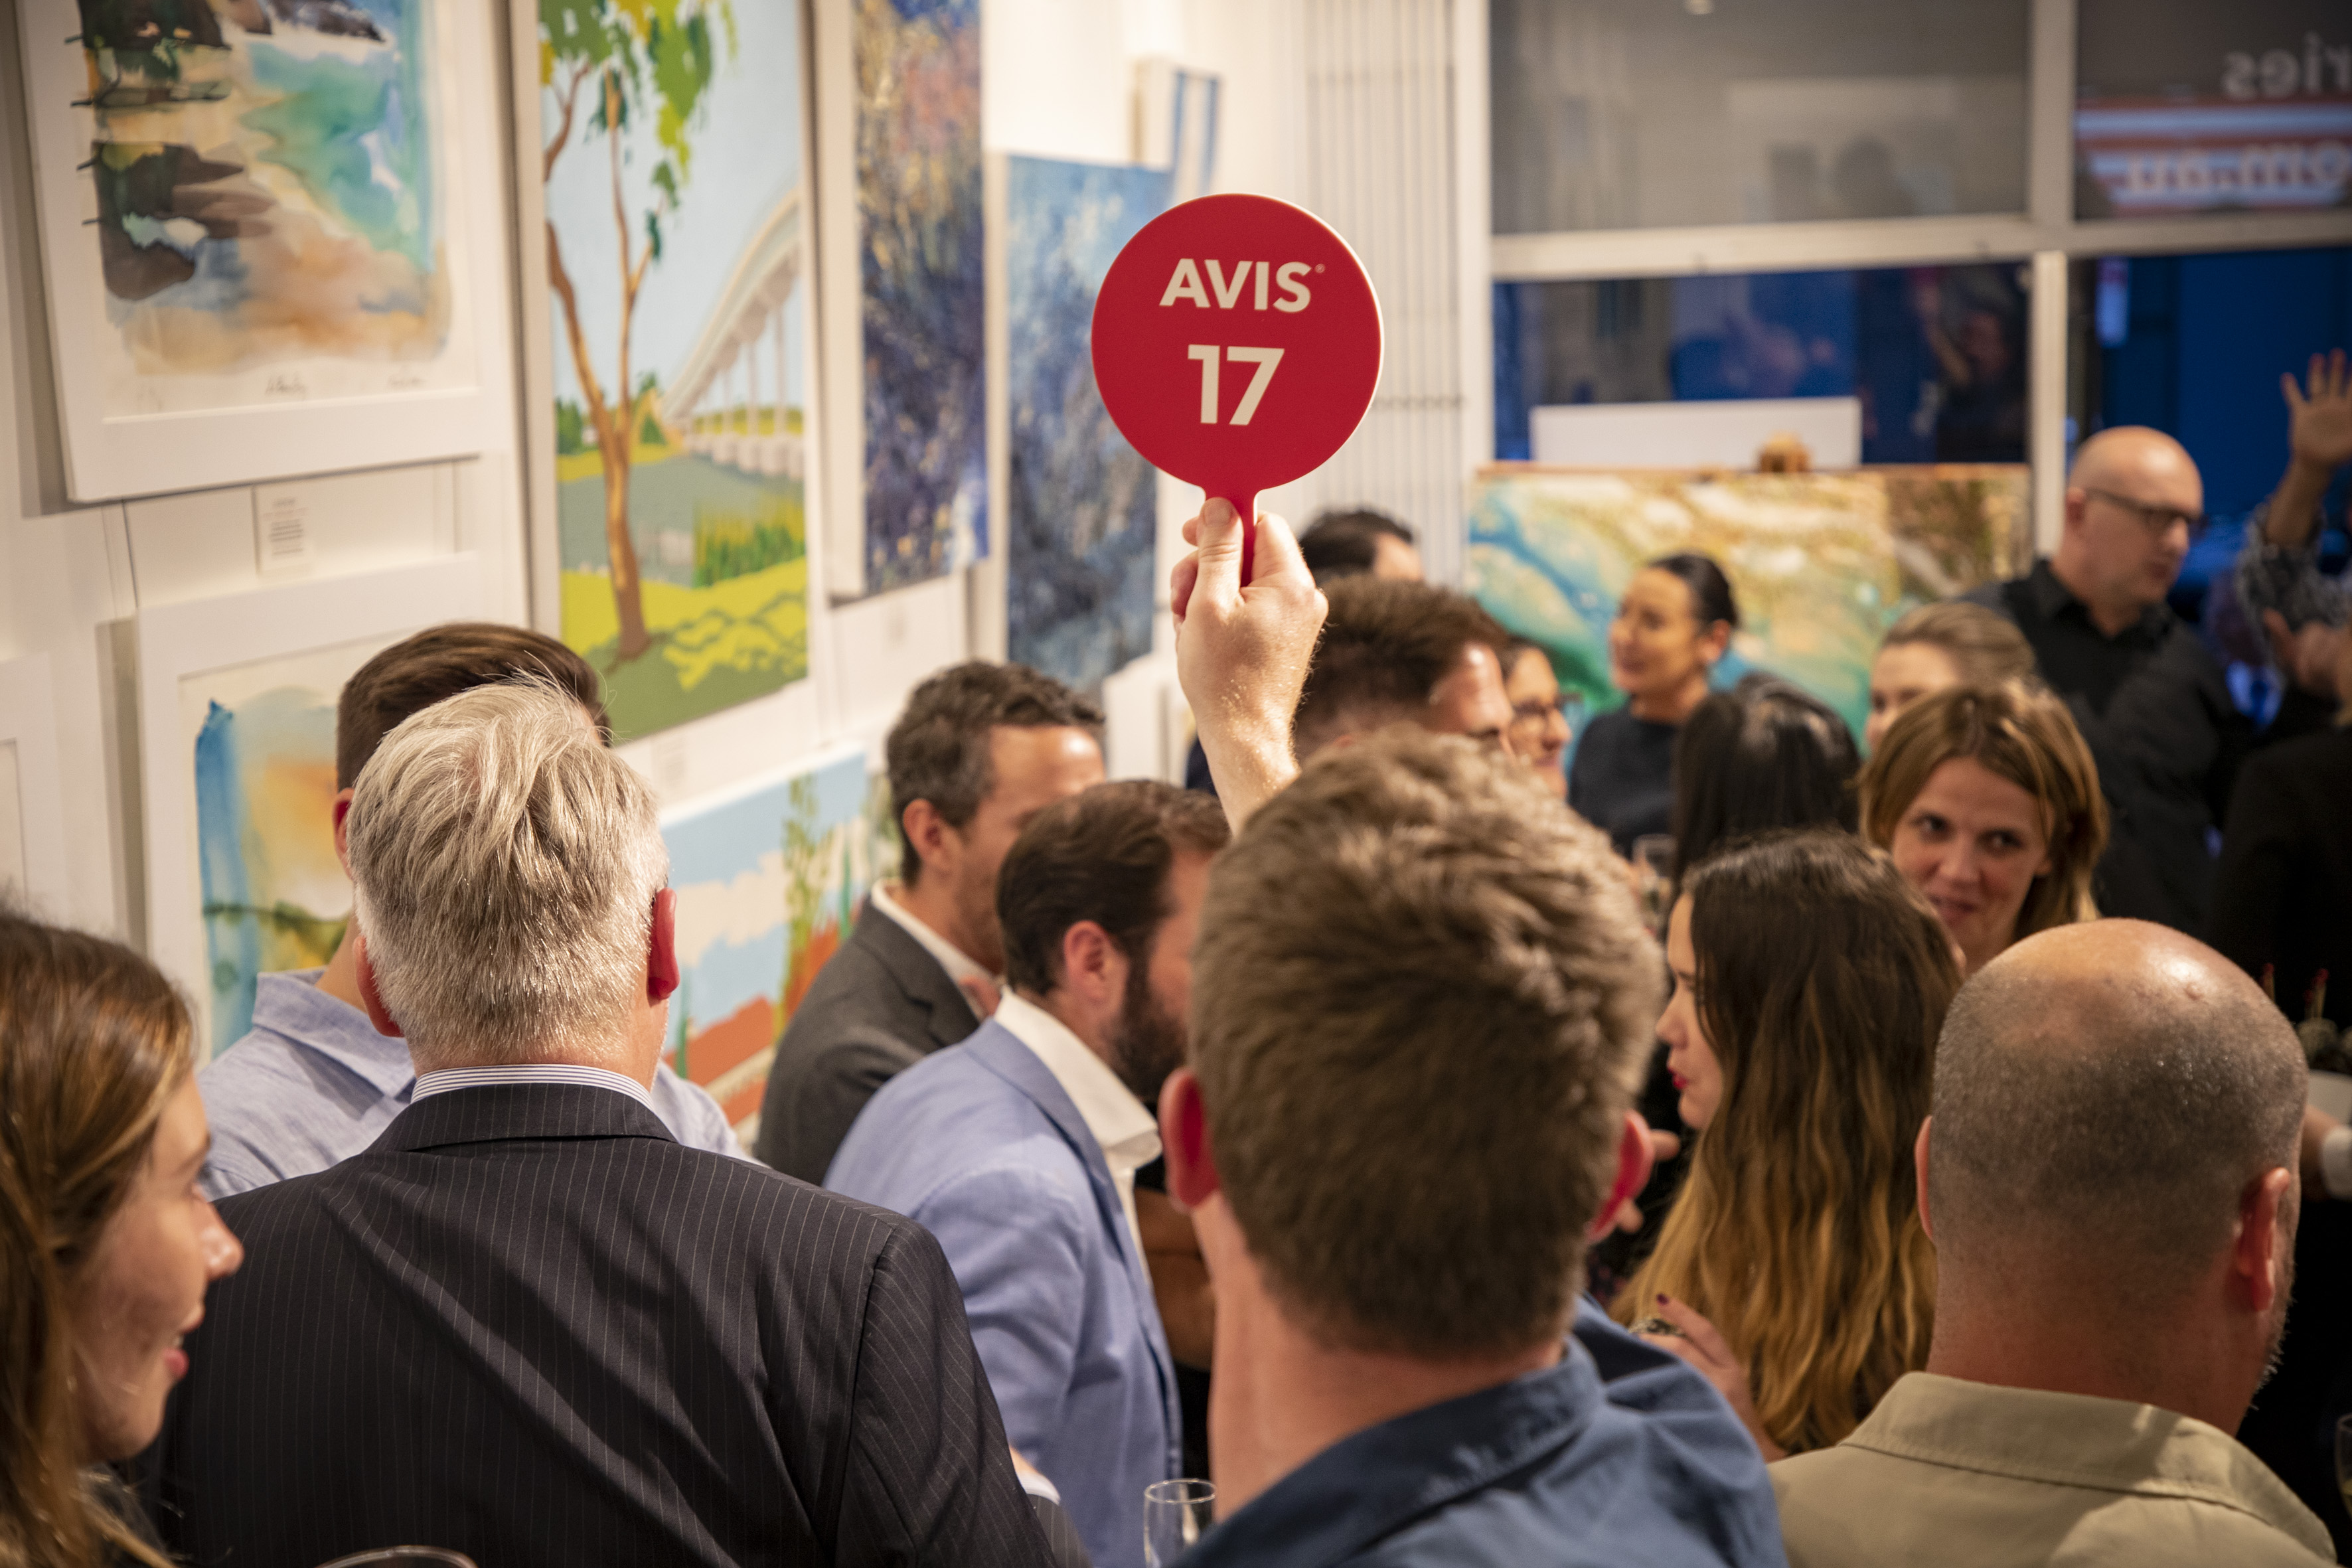 Avis raises over $15k for charity with Art of Discovery Auction via Red Havas + Havas Blvd